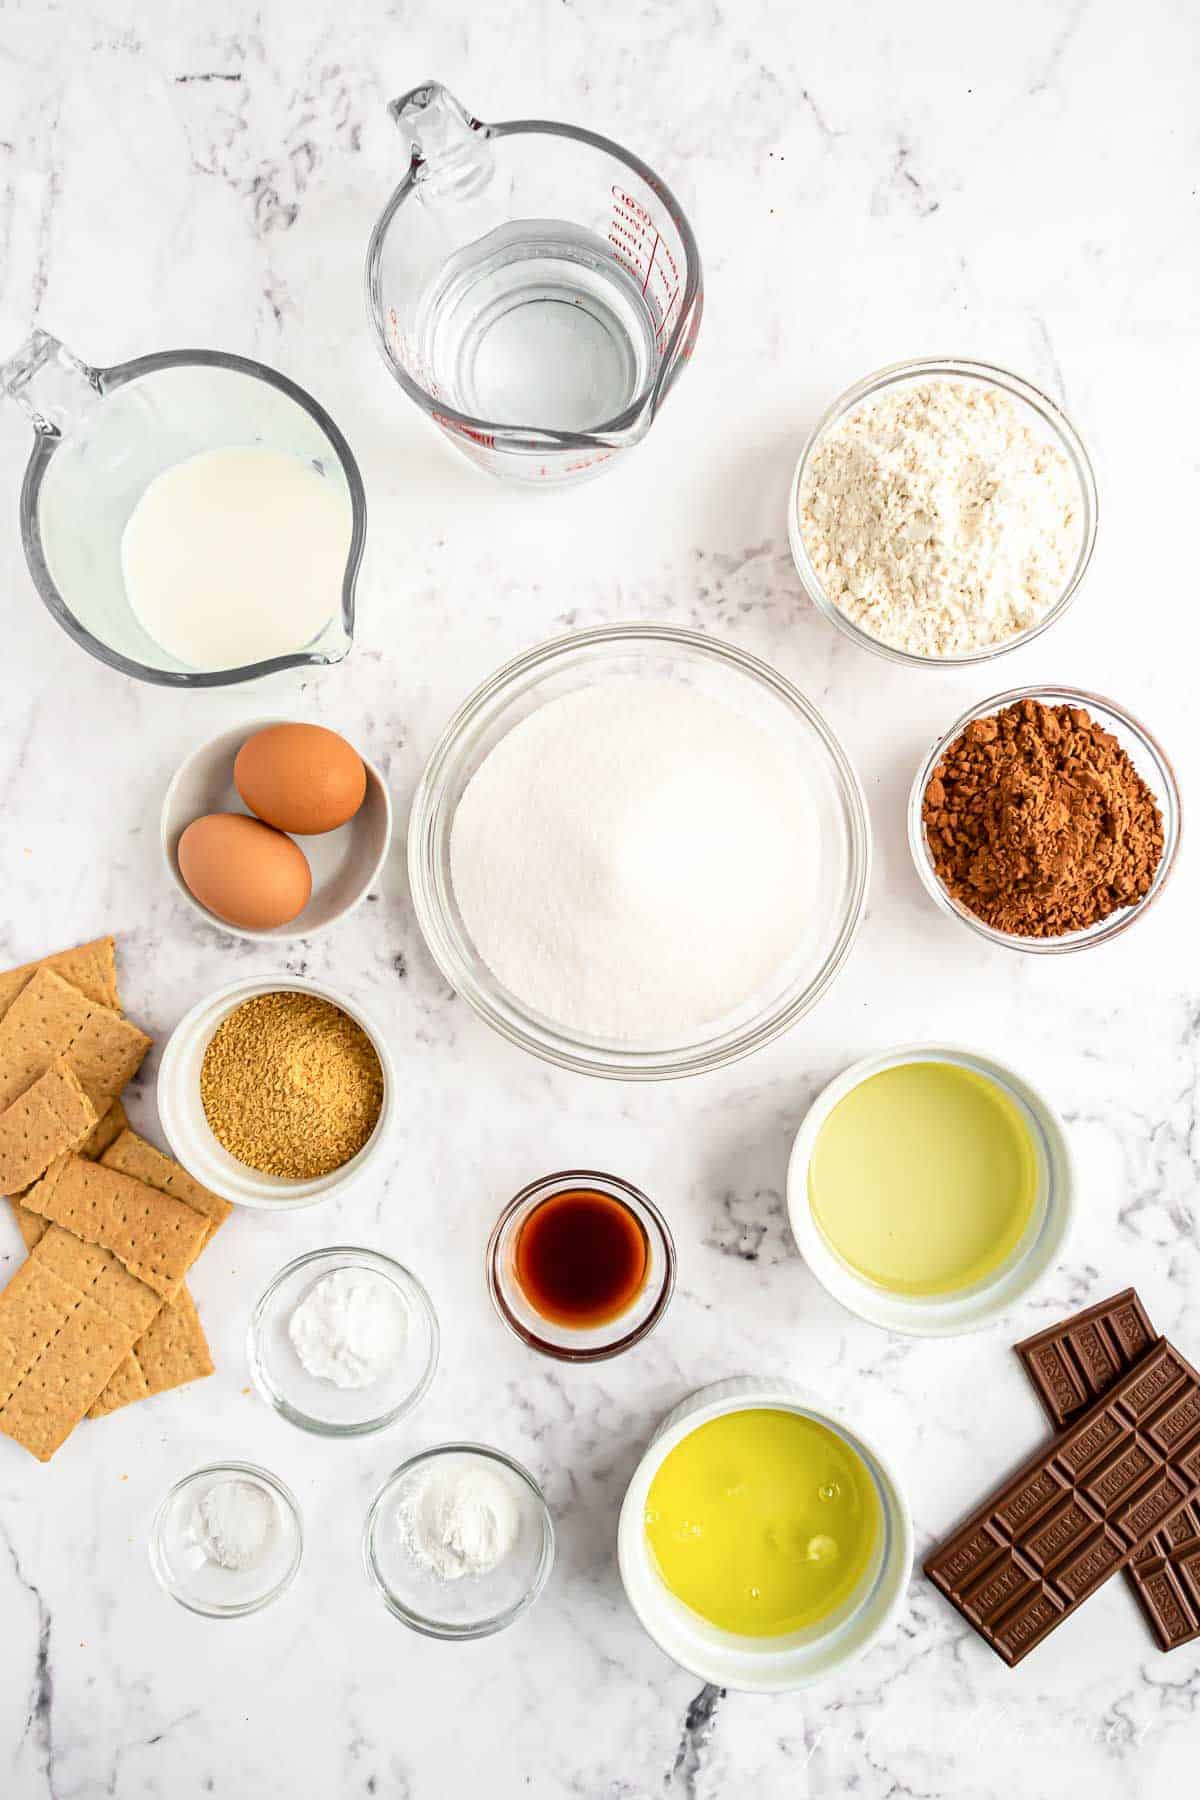 All the ingredients for smores cupcakes laid out on a white countertop.